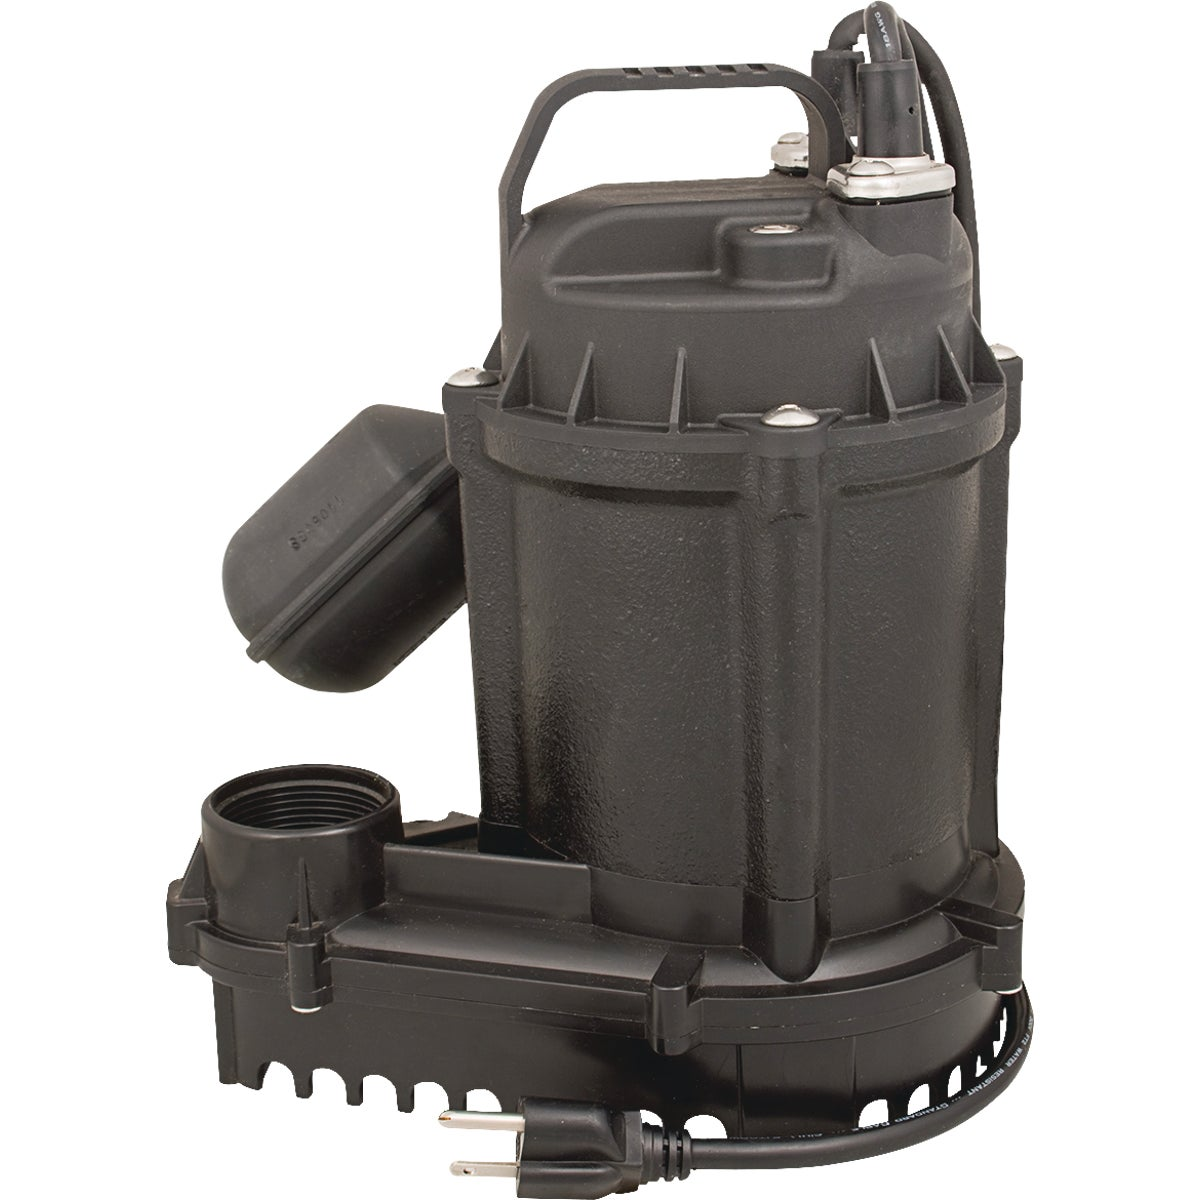 1/2HP CAST SUMP PUMP - 5STS by Star Water Systems